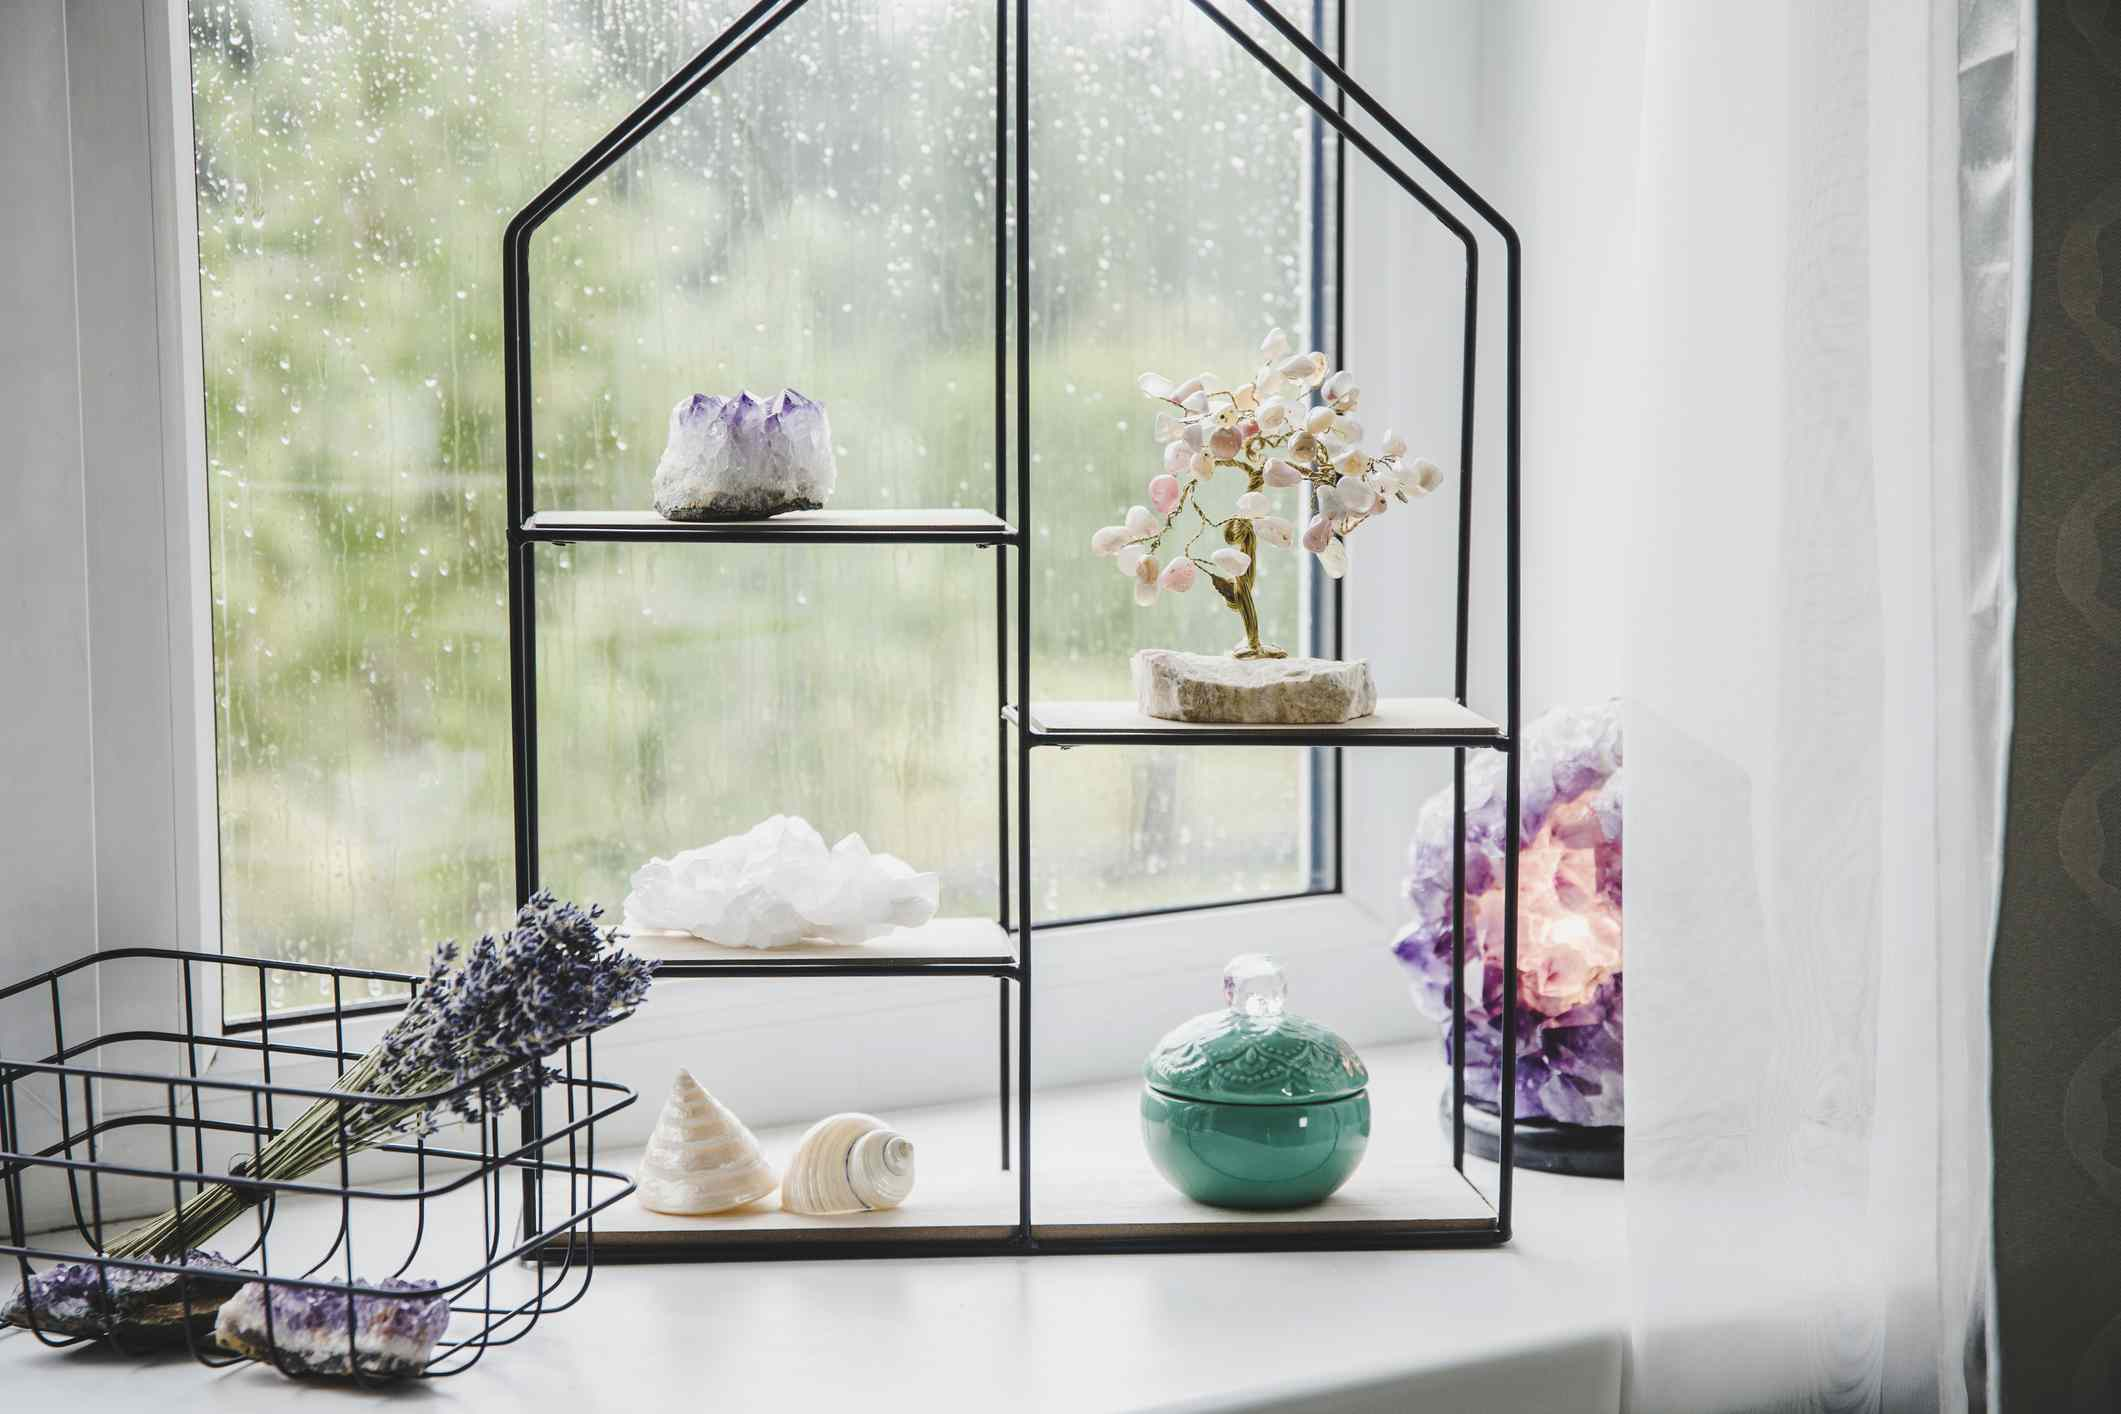 Minimal still life with modern metal wire and wooden shelf on window sill for home decoration. Spiritual interior ,semi precious gemstones on display.